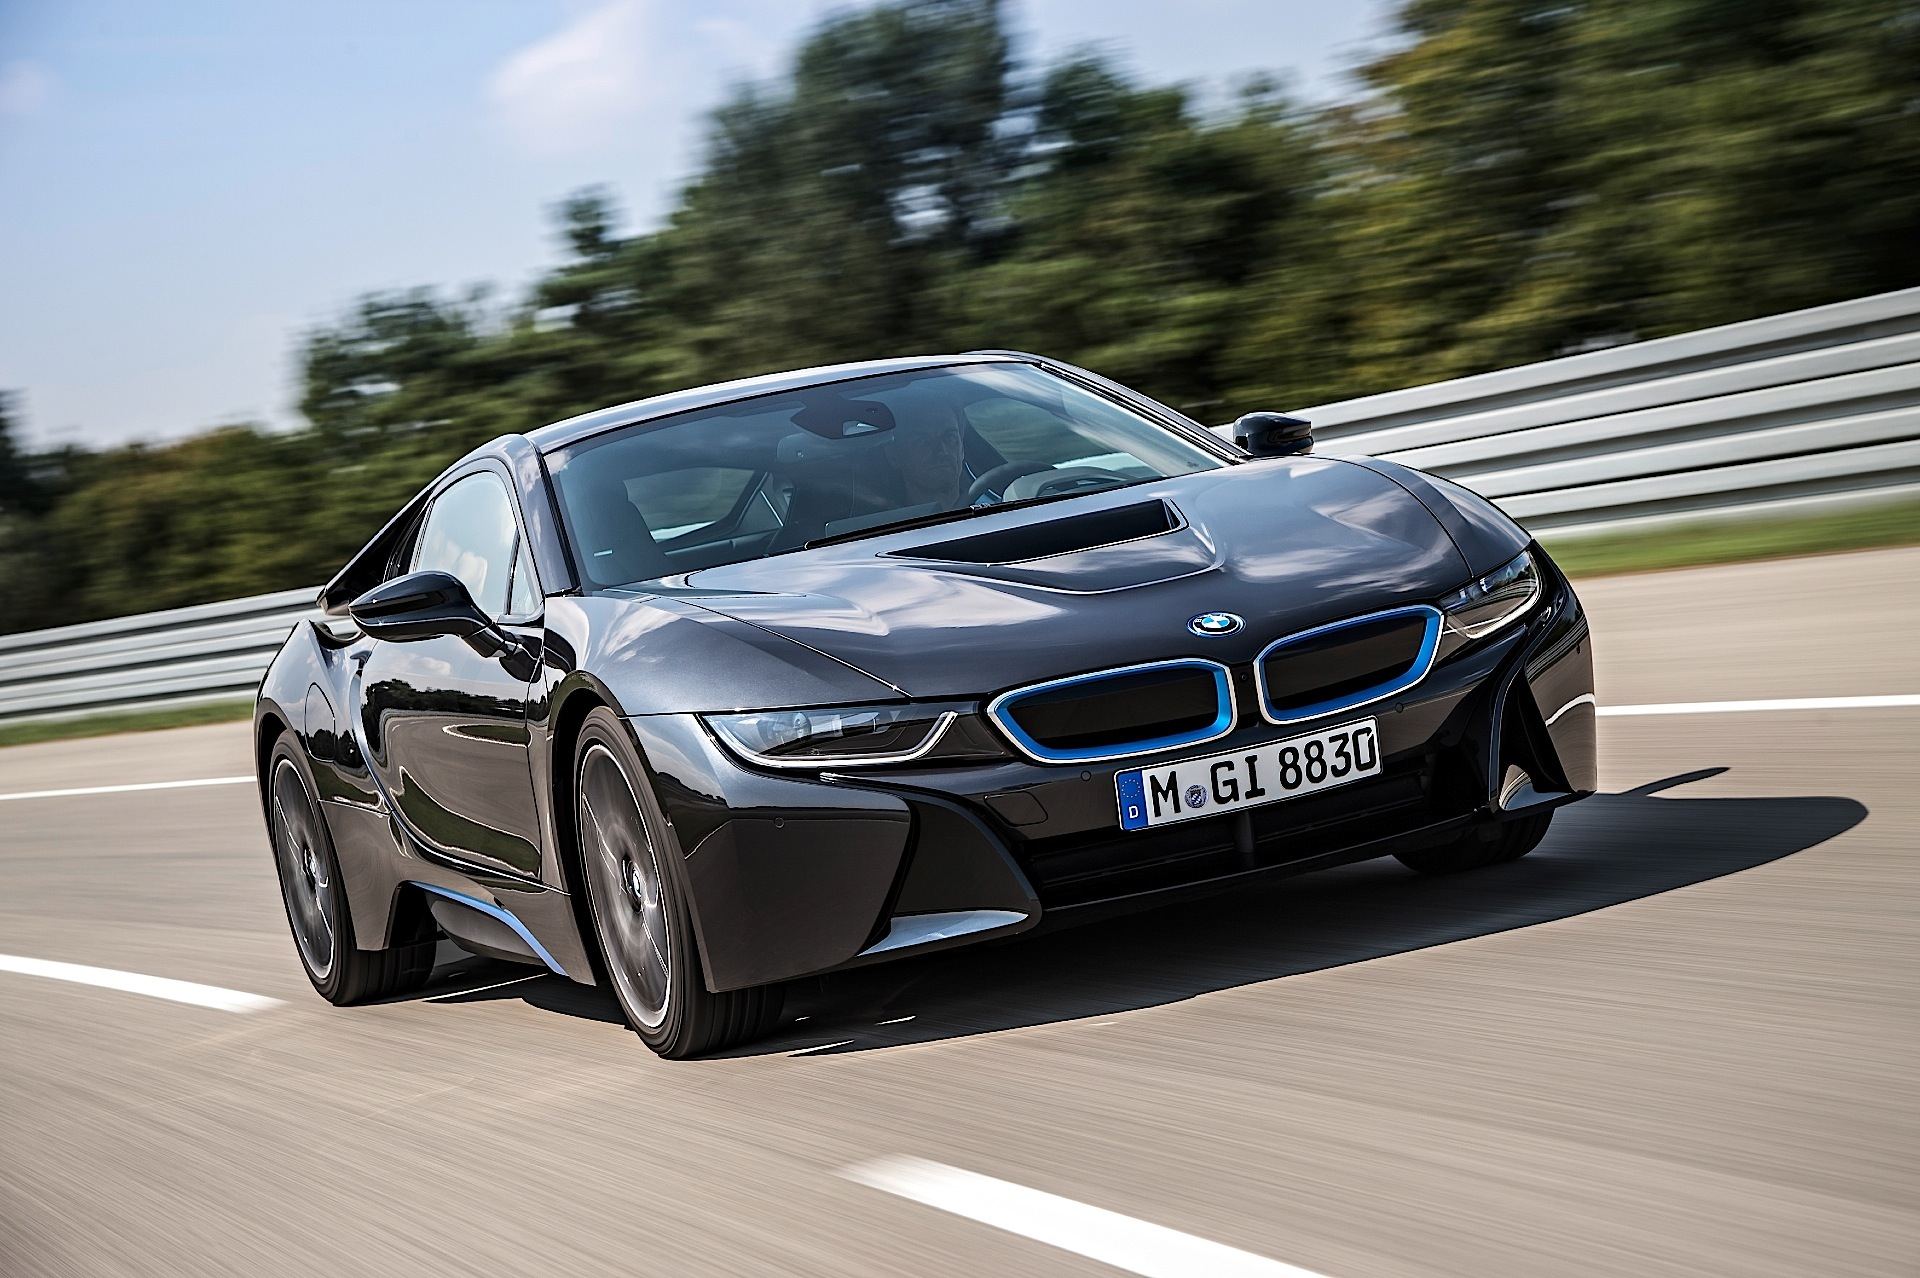 BMW To Increase Production Of The I At The Expense Of The I To - 2013 bmw i8